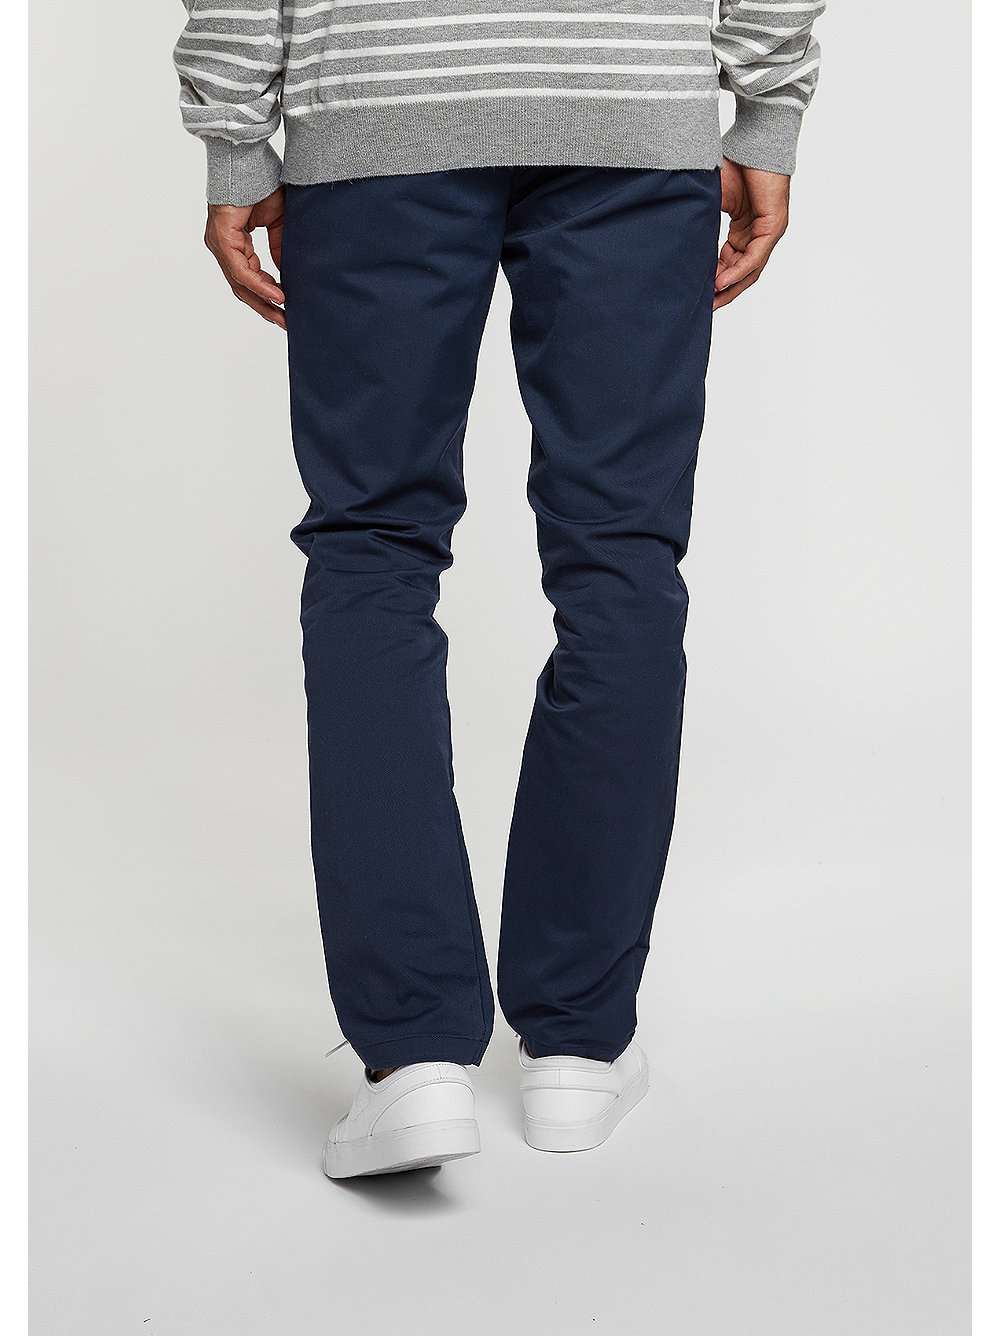 carhartt wip chino hose sid navy snipes onlineshop. Black Bedroom Furniture Sets. Home Design Ideas